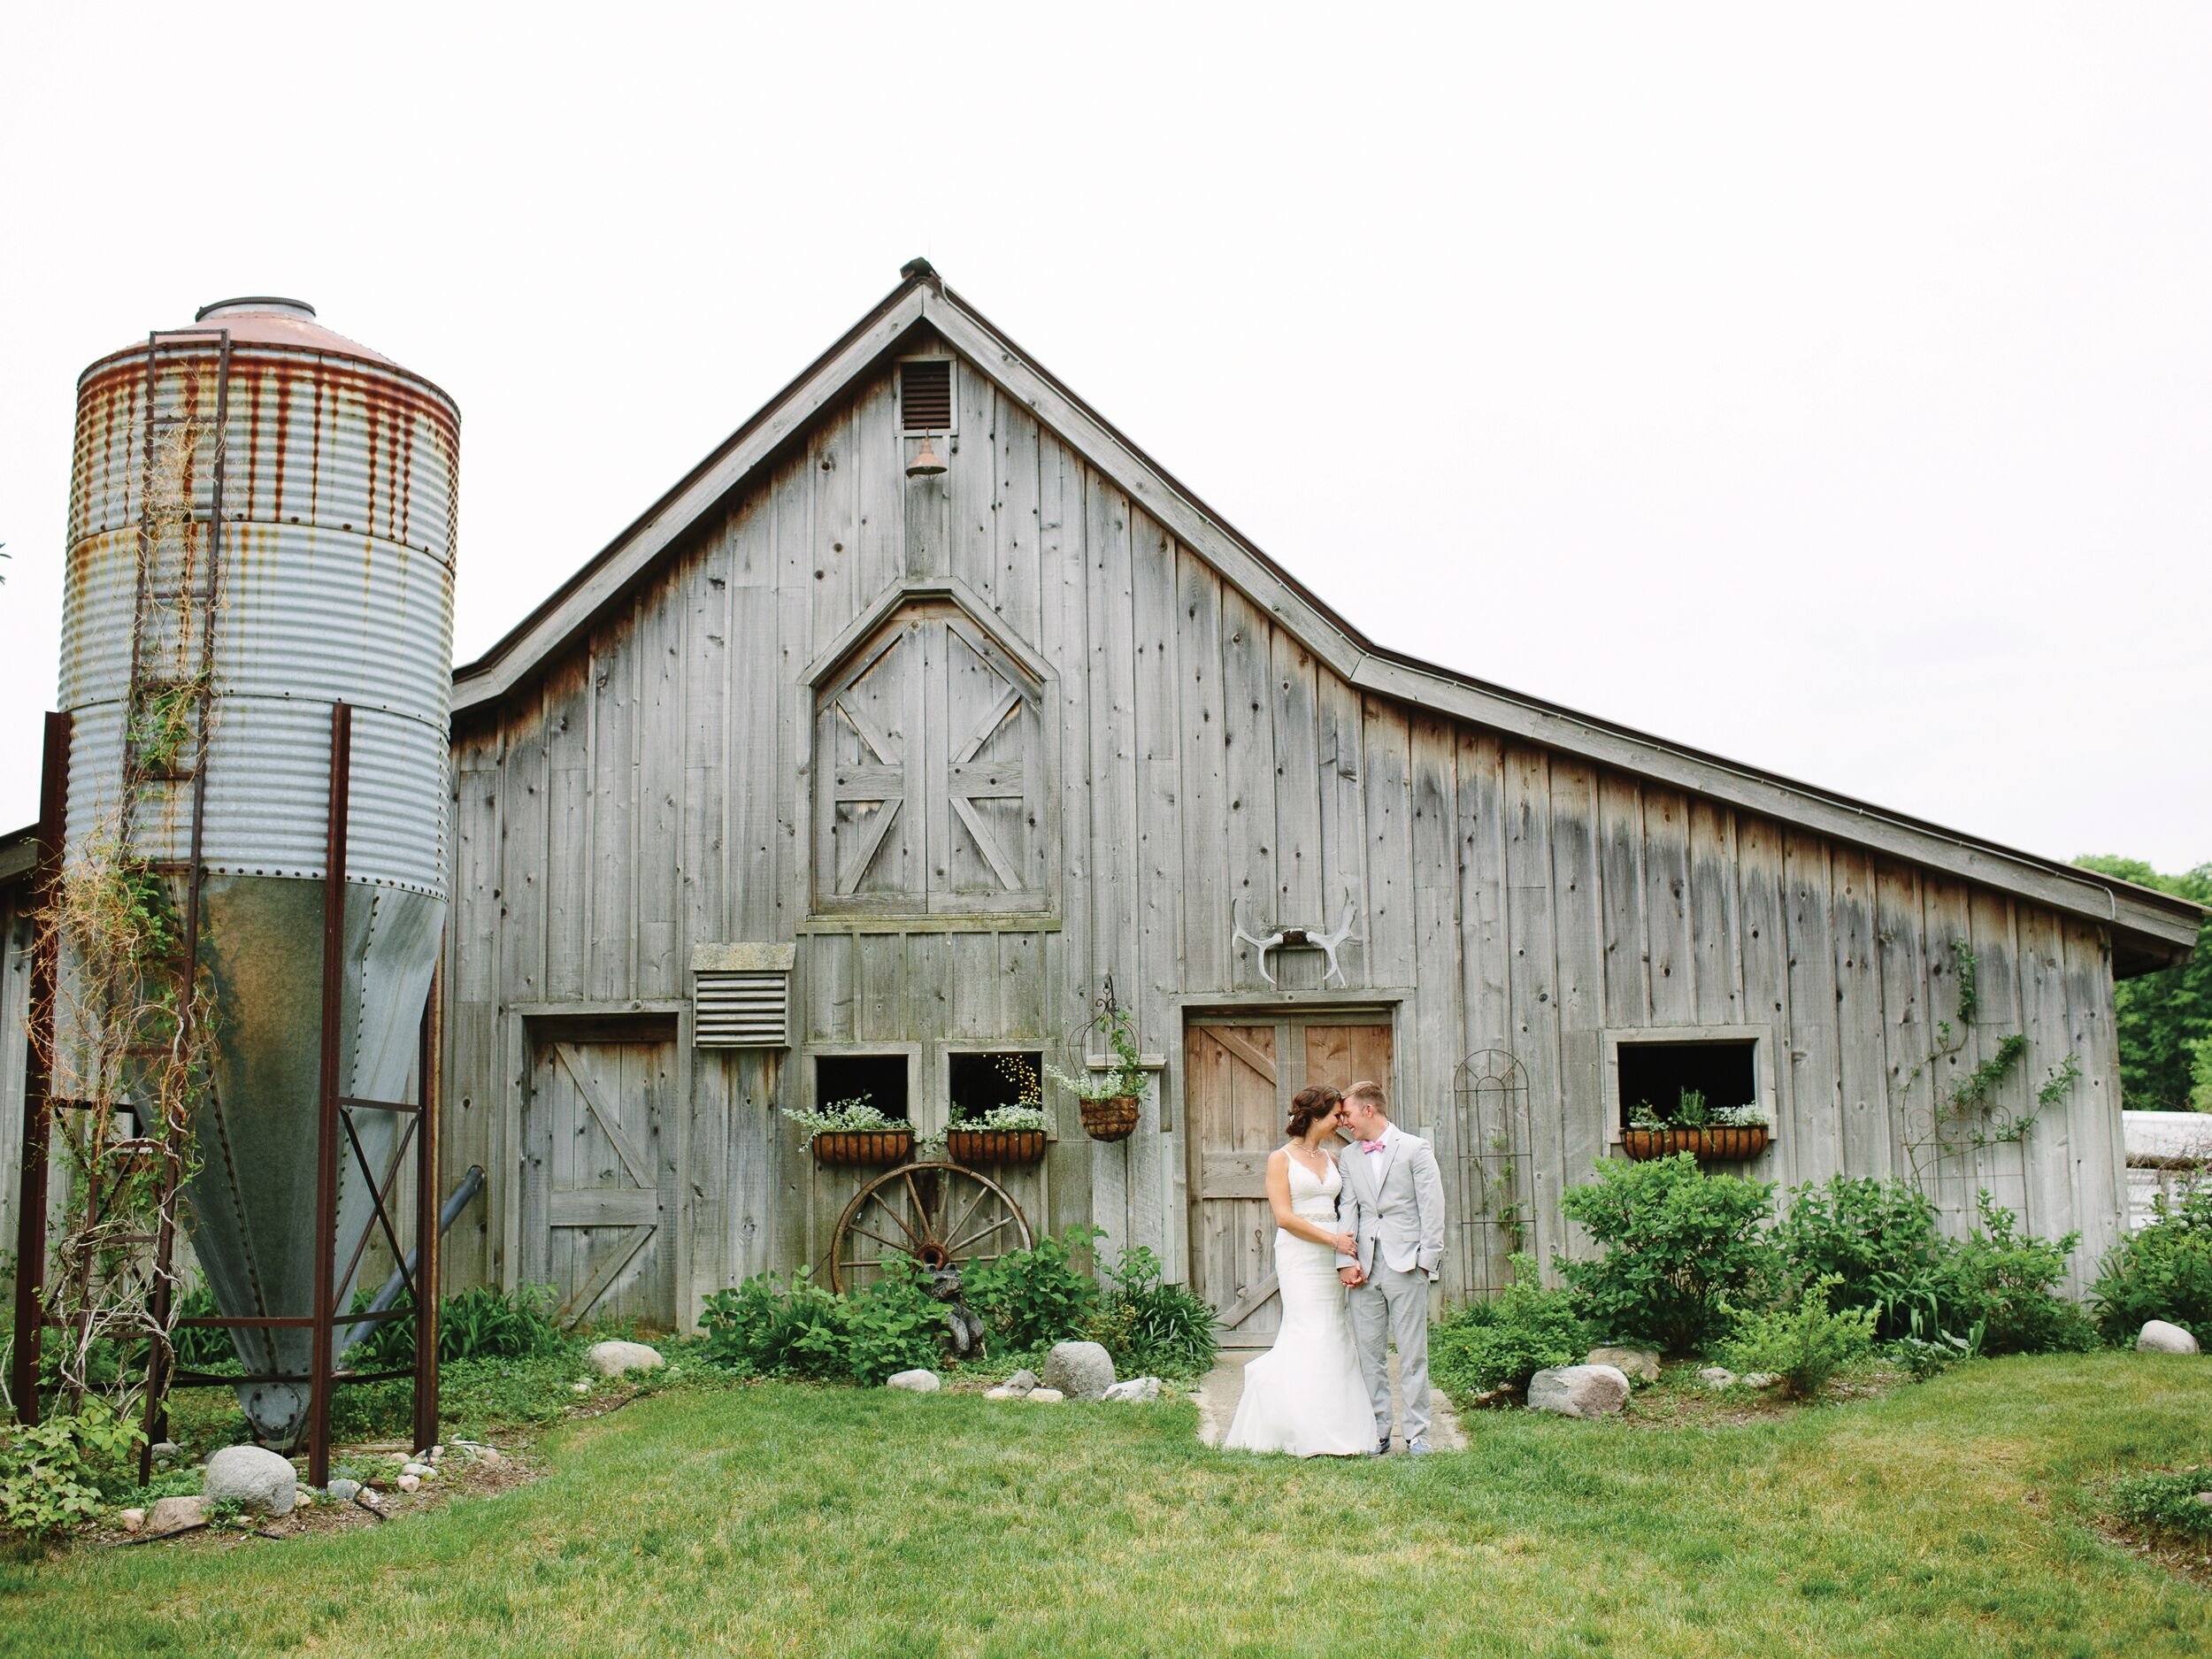 What are some tips for renting a rustic barn as a wedding venue?